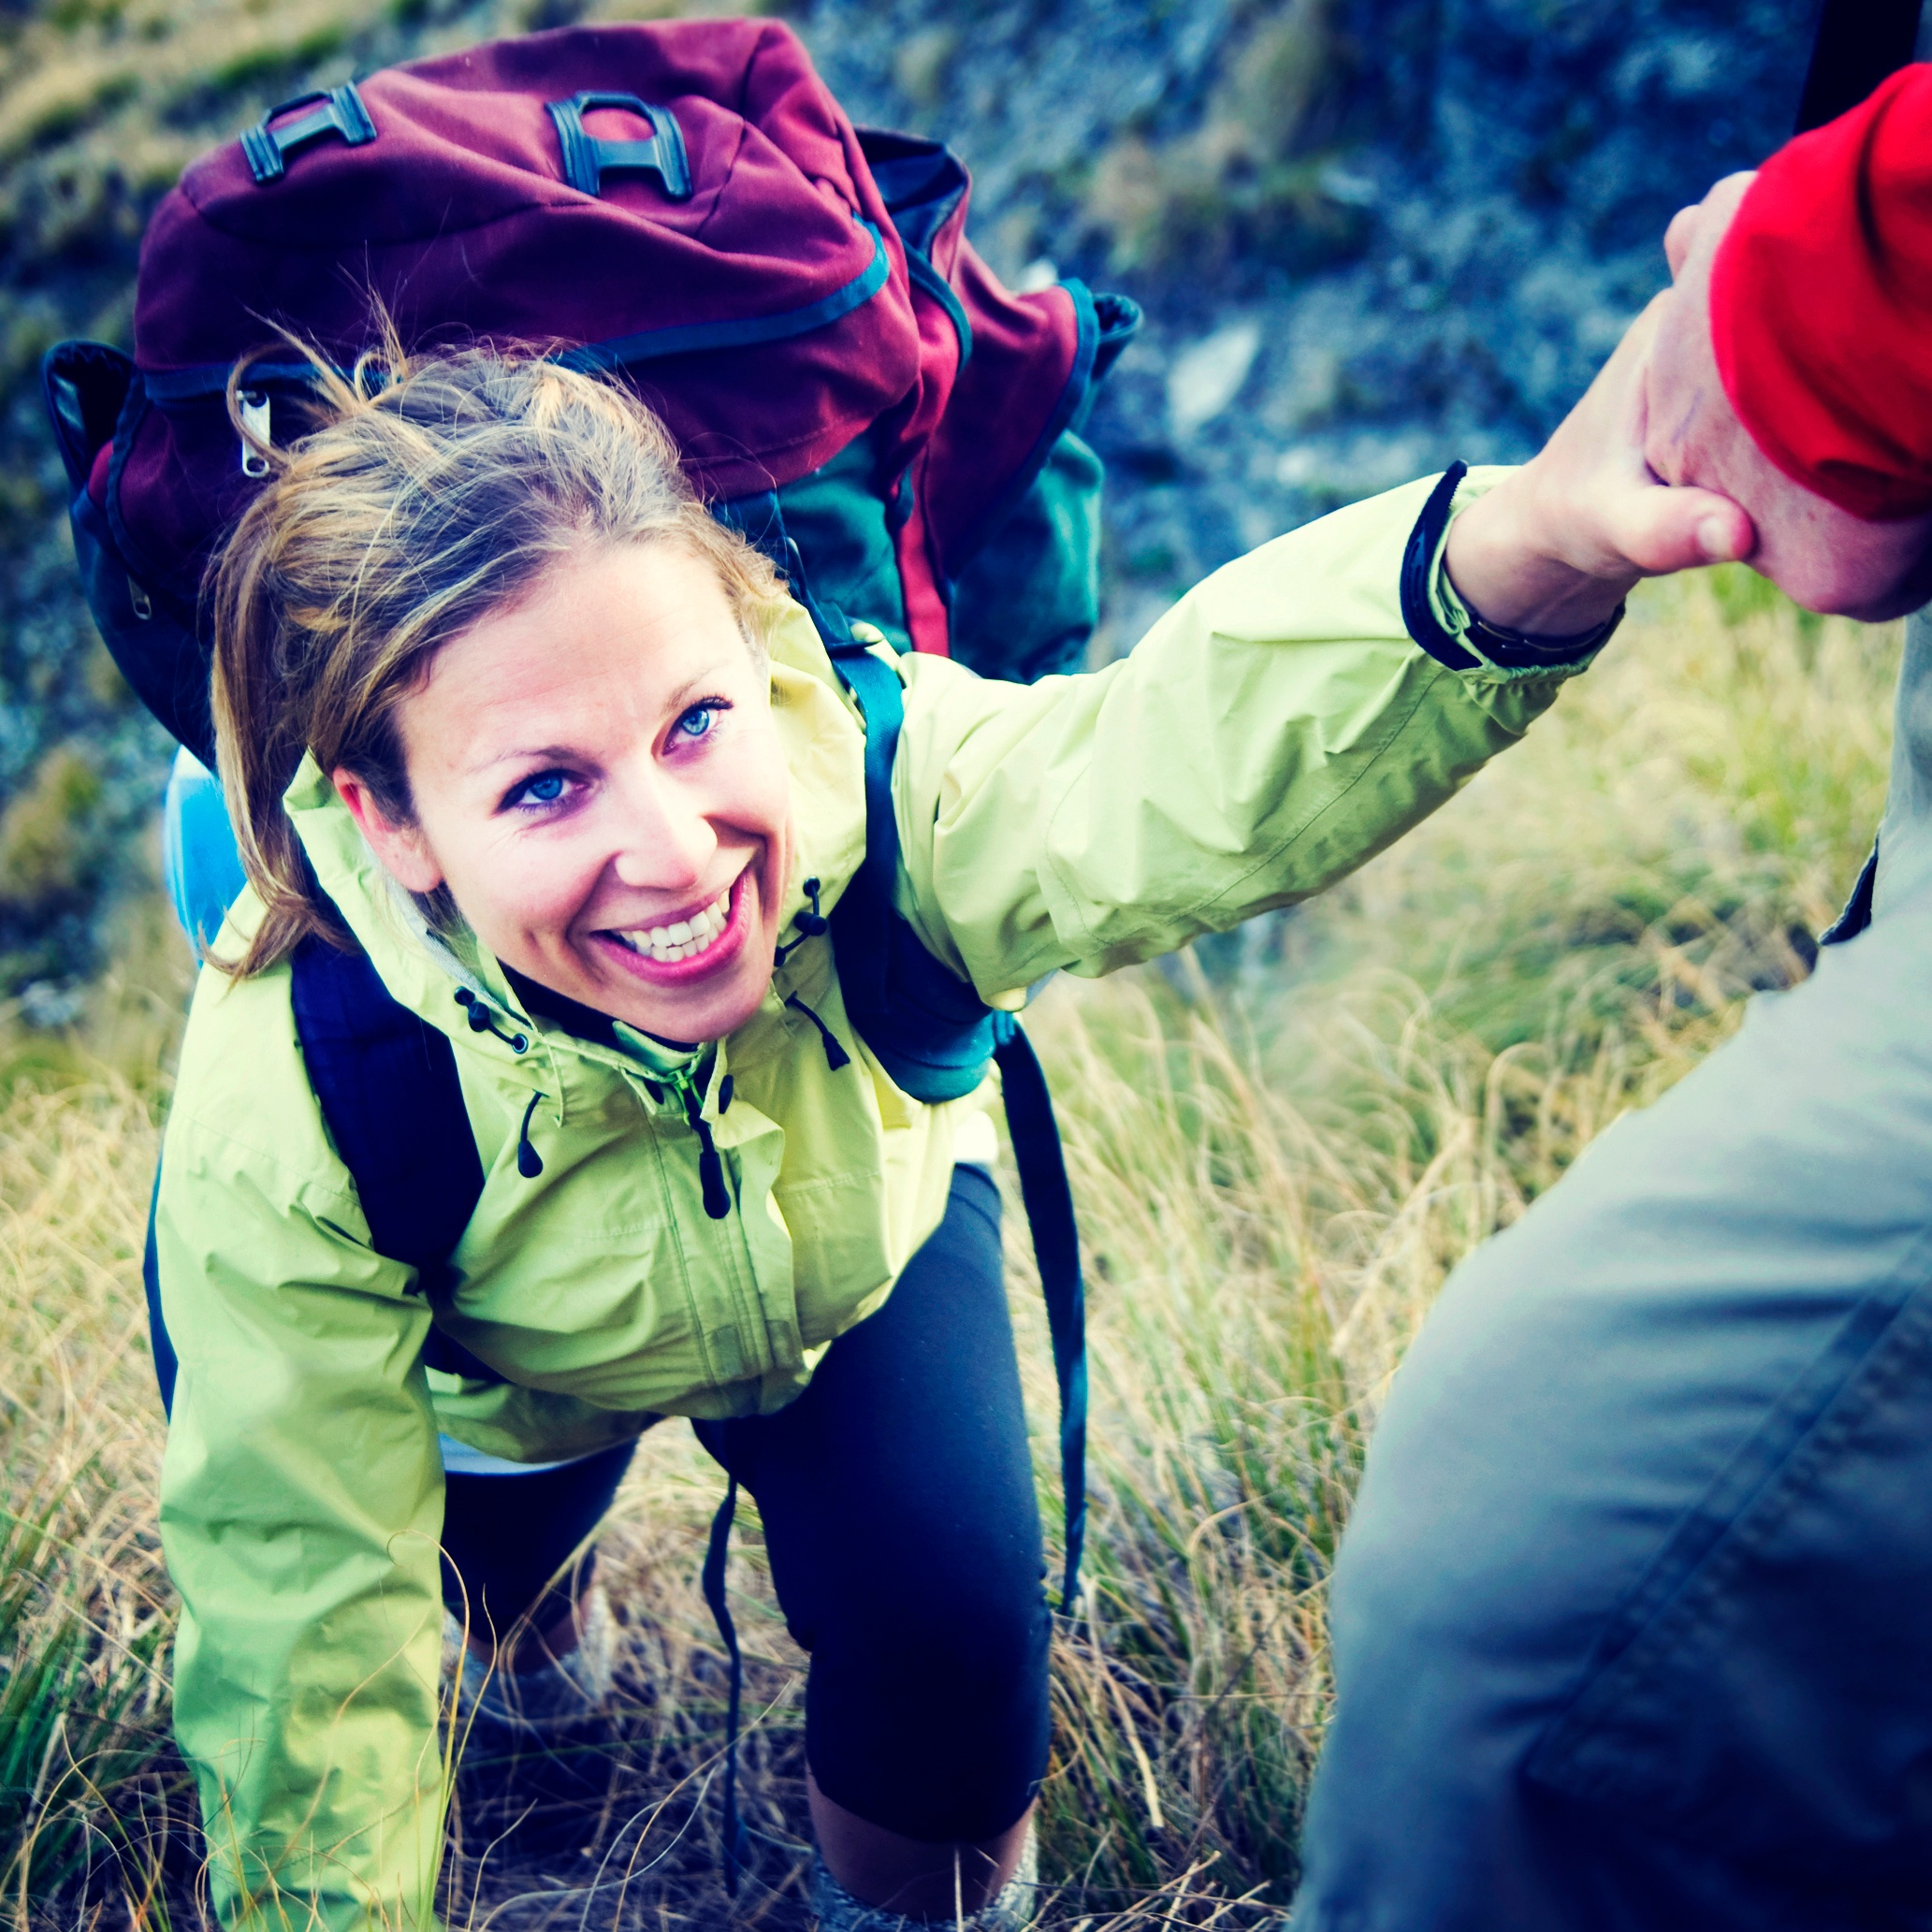 A woman accepting a lending hand of help on a hike